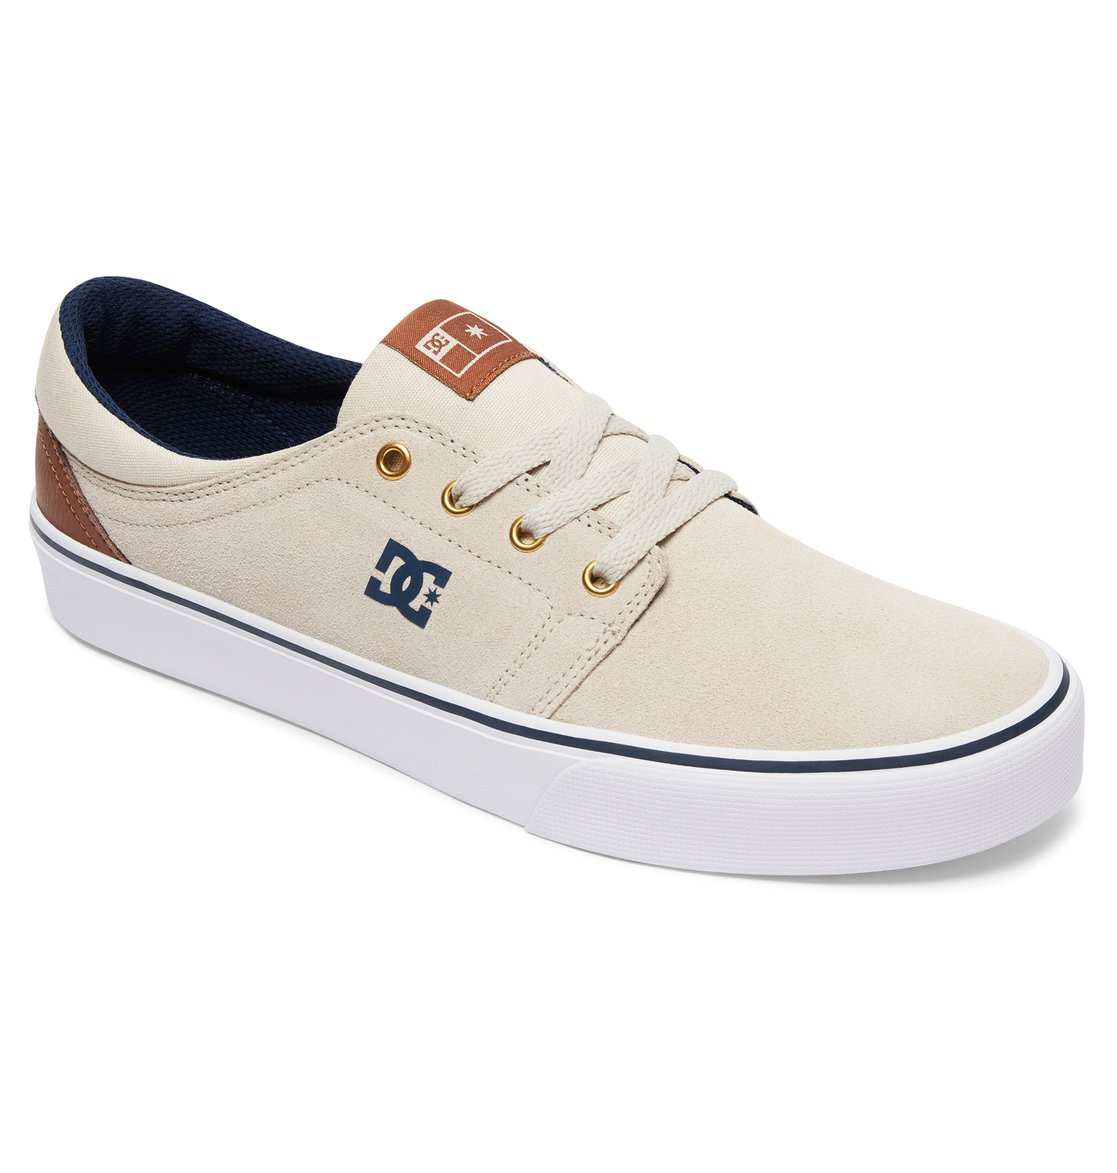 trase s chaussures de skate 3613372842542 dc shoes. Black Bedroom Furniture Sets. Home Design Ideas